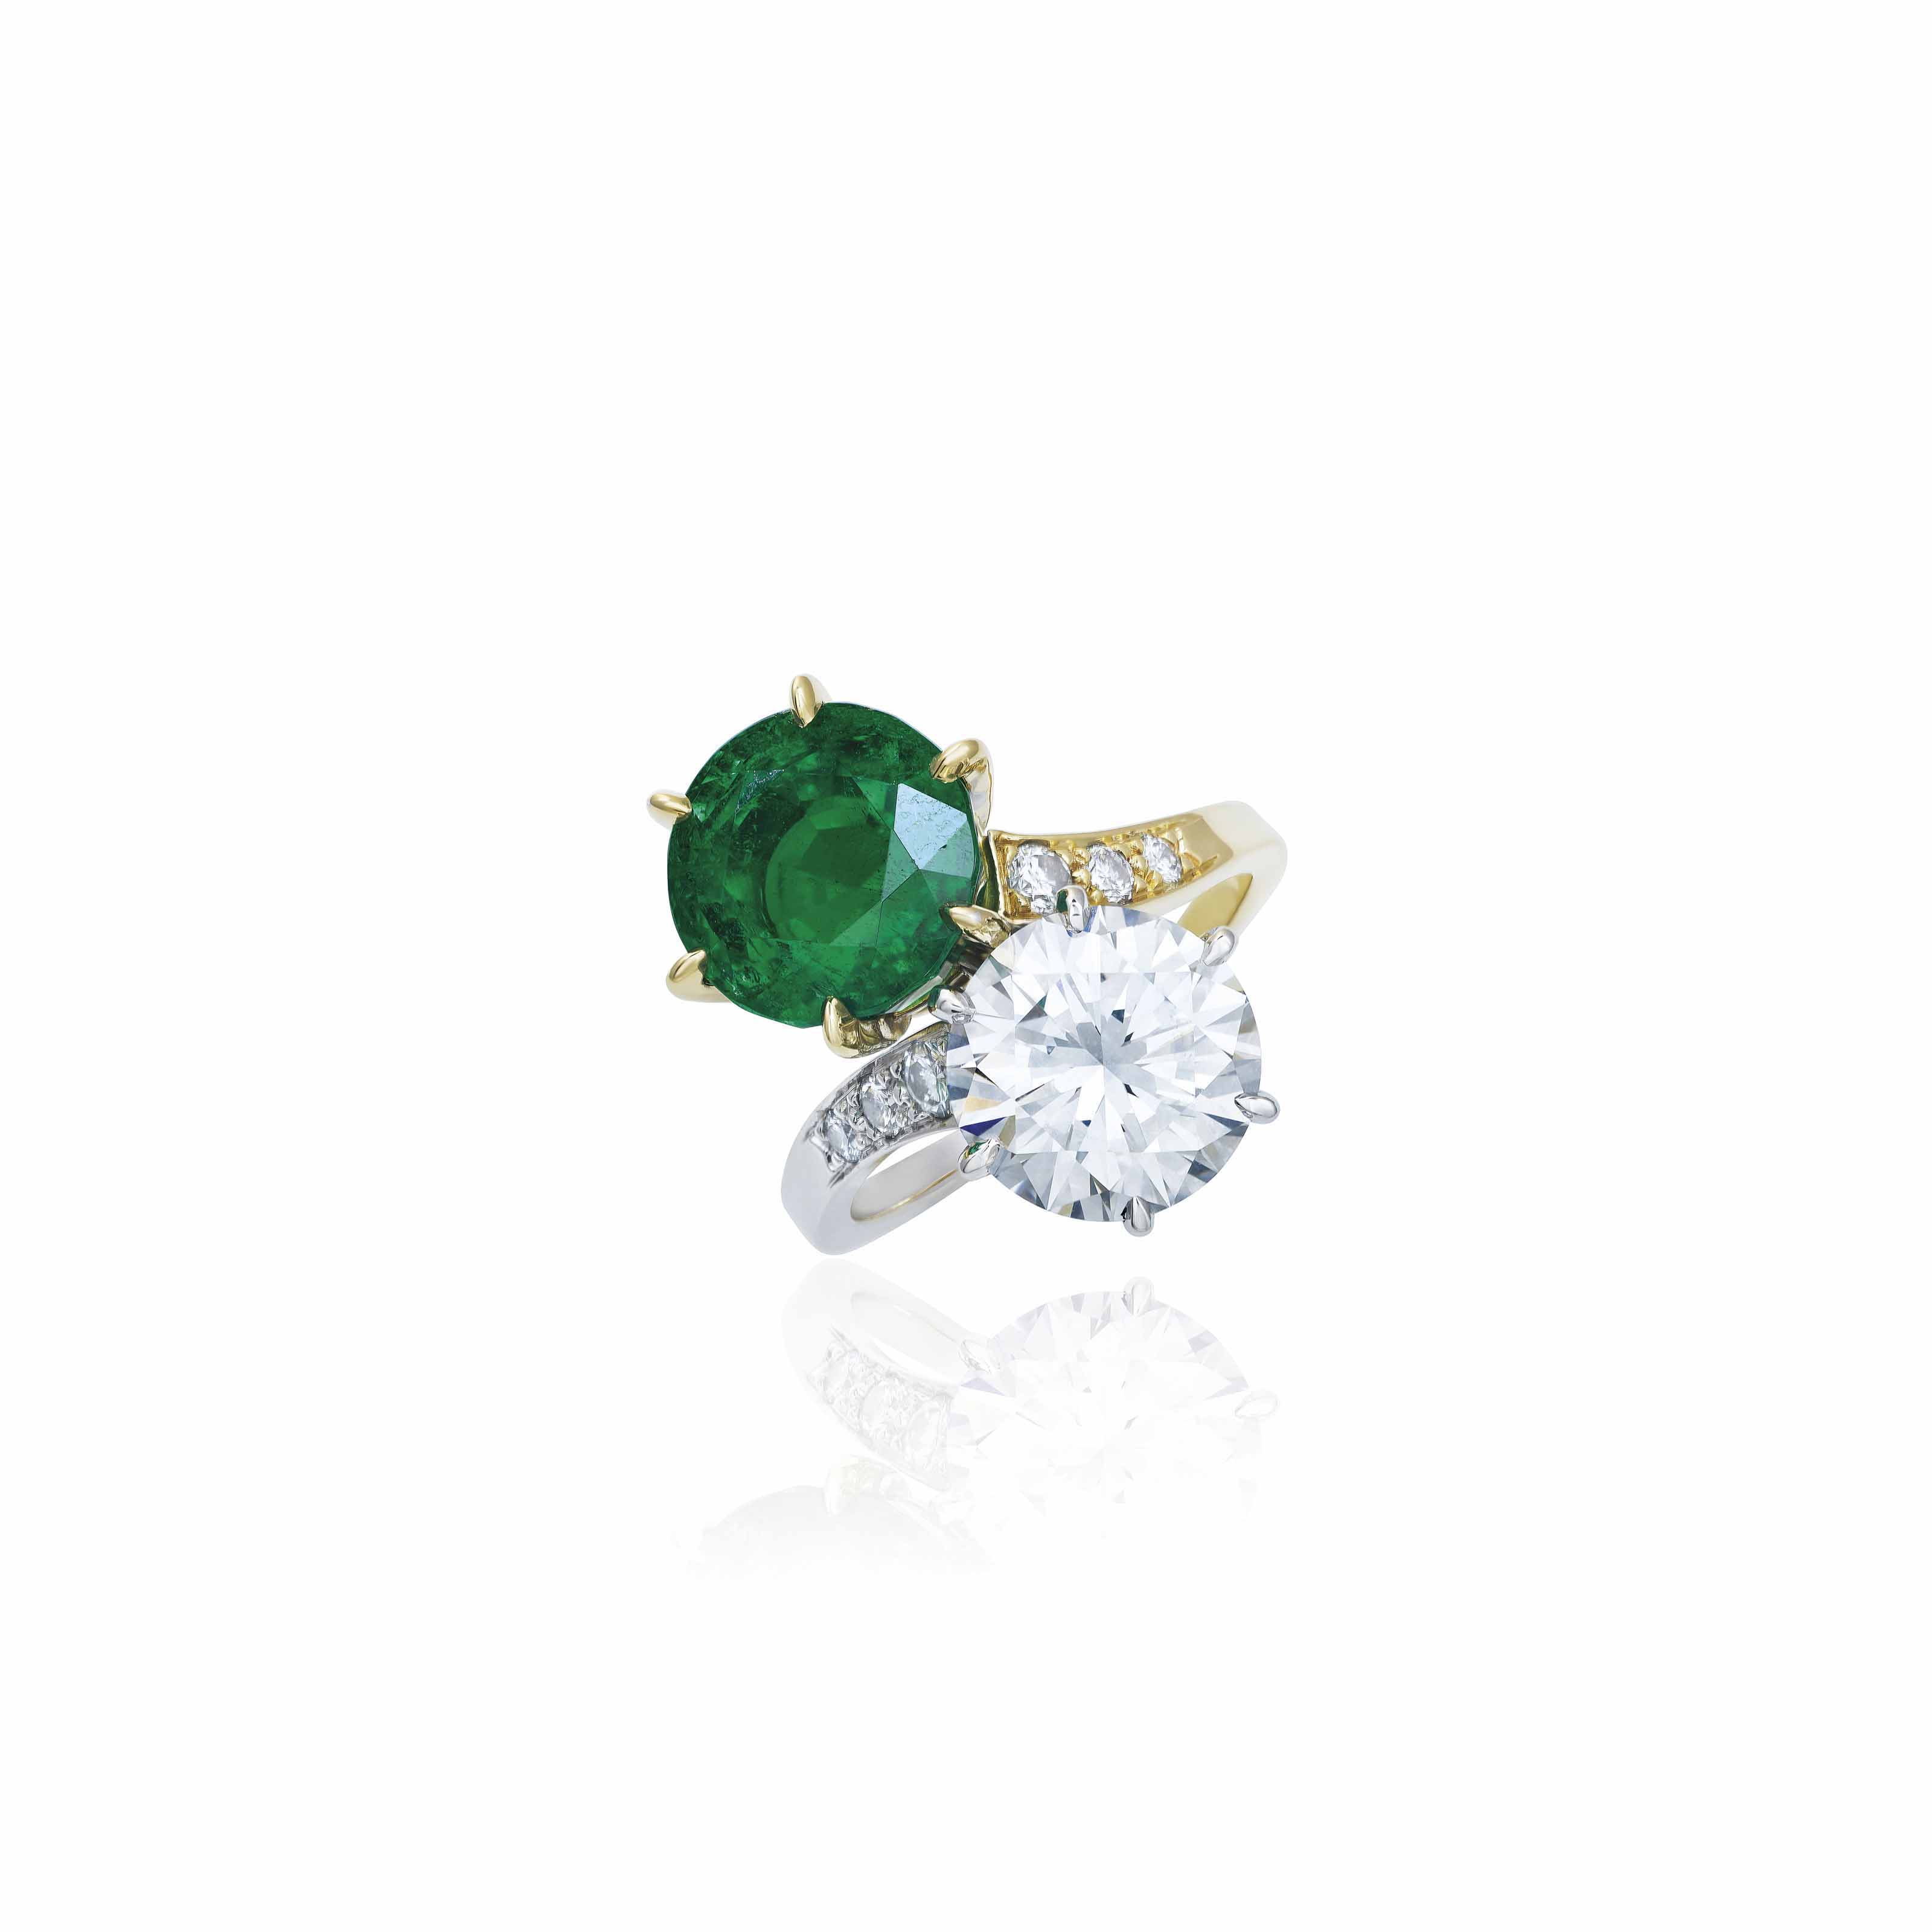 EMERALD AND DIAMOND RING, MEISTER